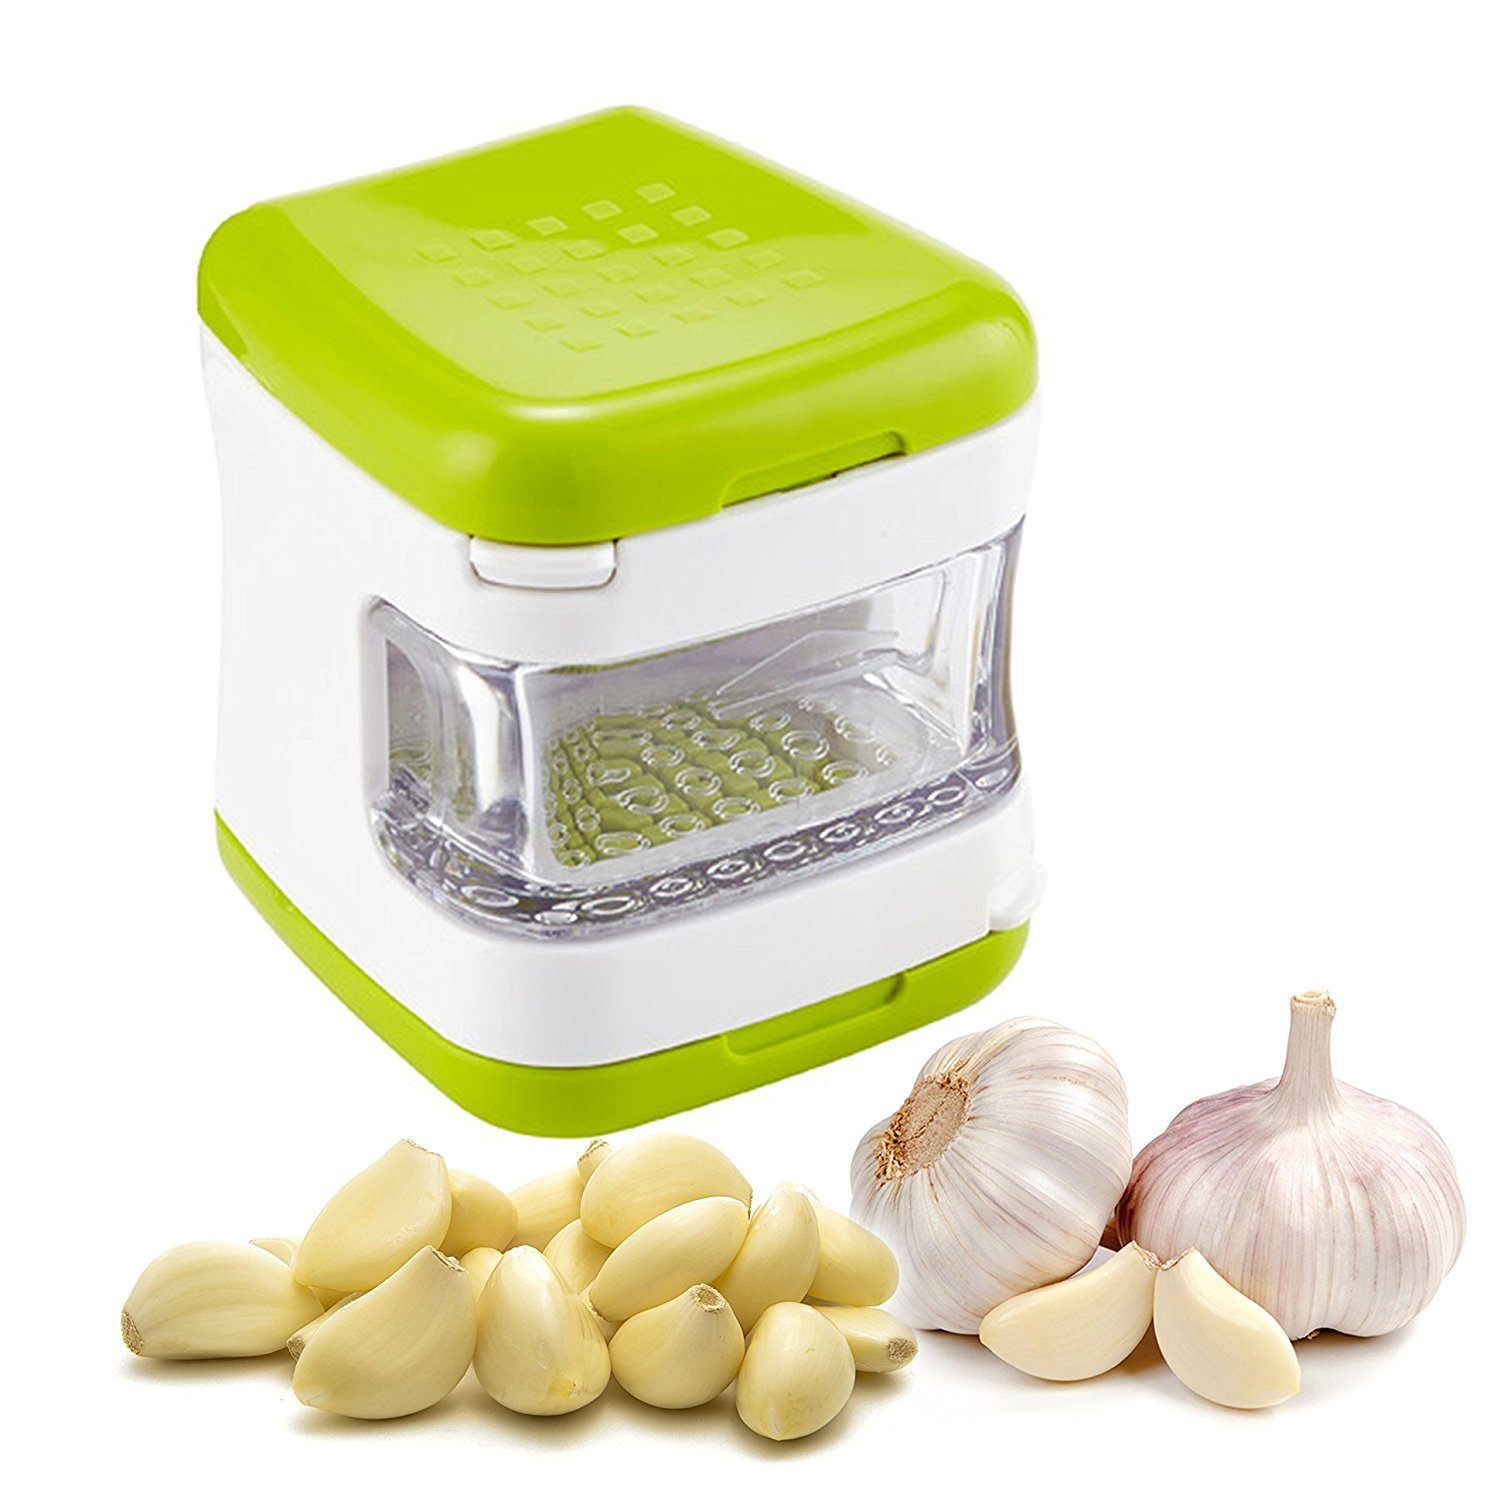 KCASA KC-GS067 Stainless Steel Blade Garlic Press Presser Crusher Onion Chopper Mincer Slicer Grater